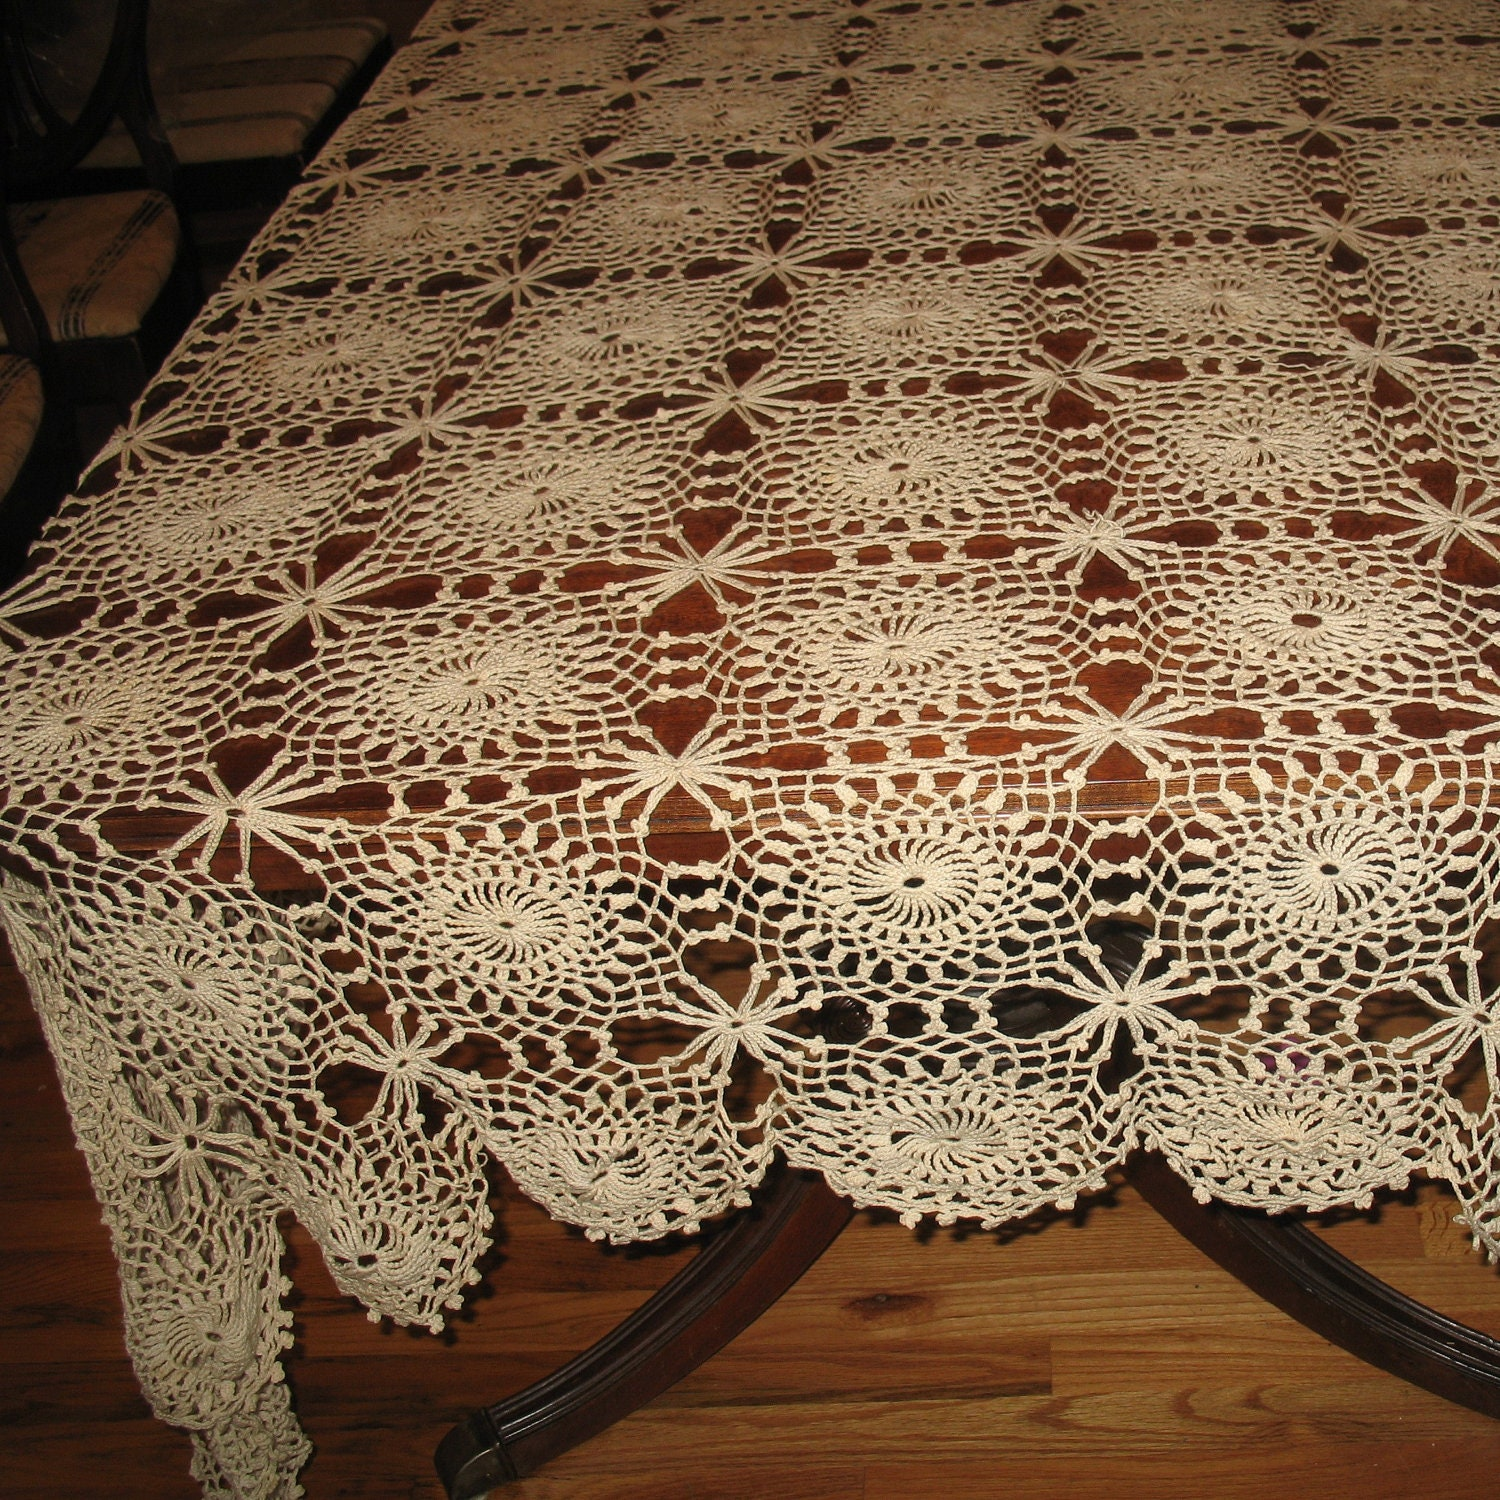 Crochet Tablecloth : Vintage Hand Crocheted Tablecloth Lacy Crochet by CraftItVintage